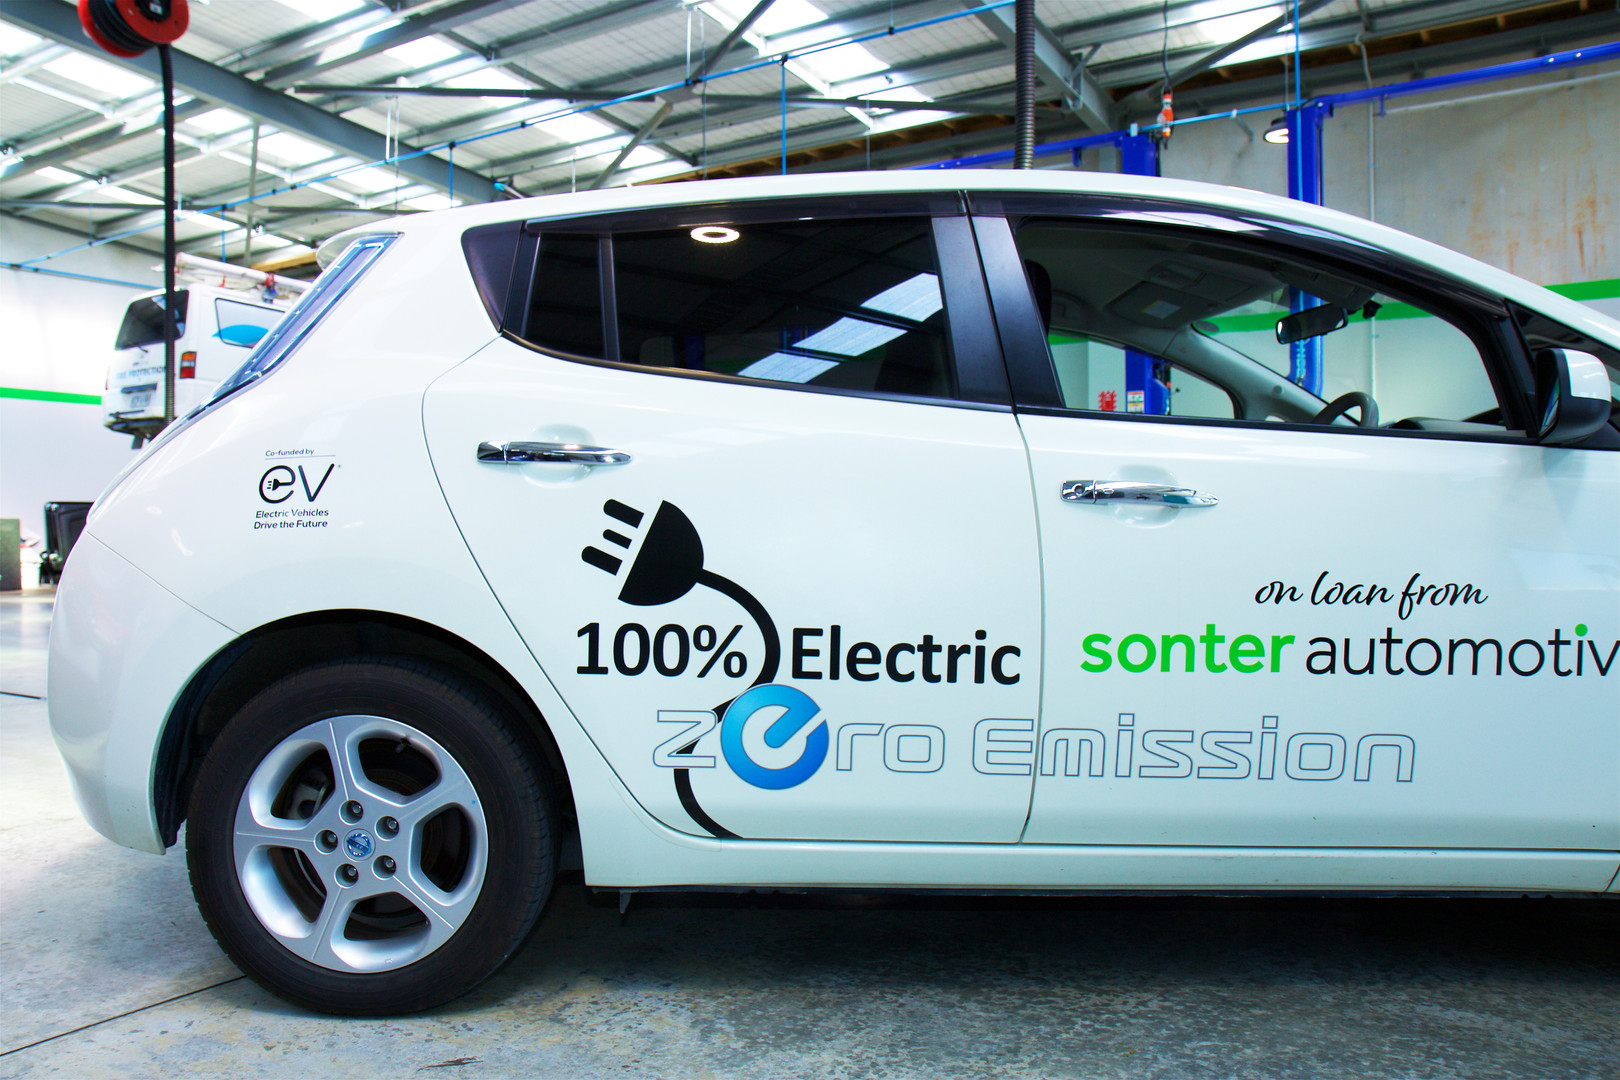 Sonter Auto electric.jpg